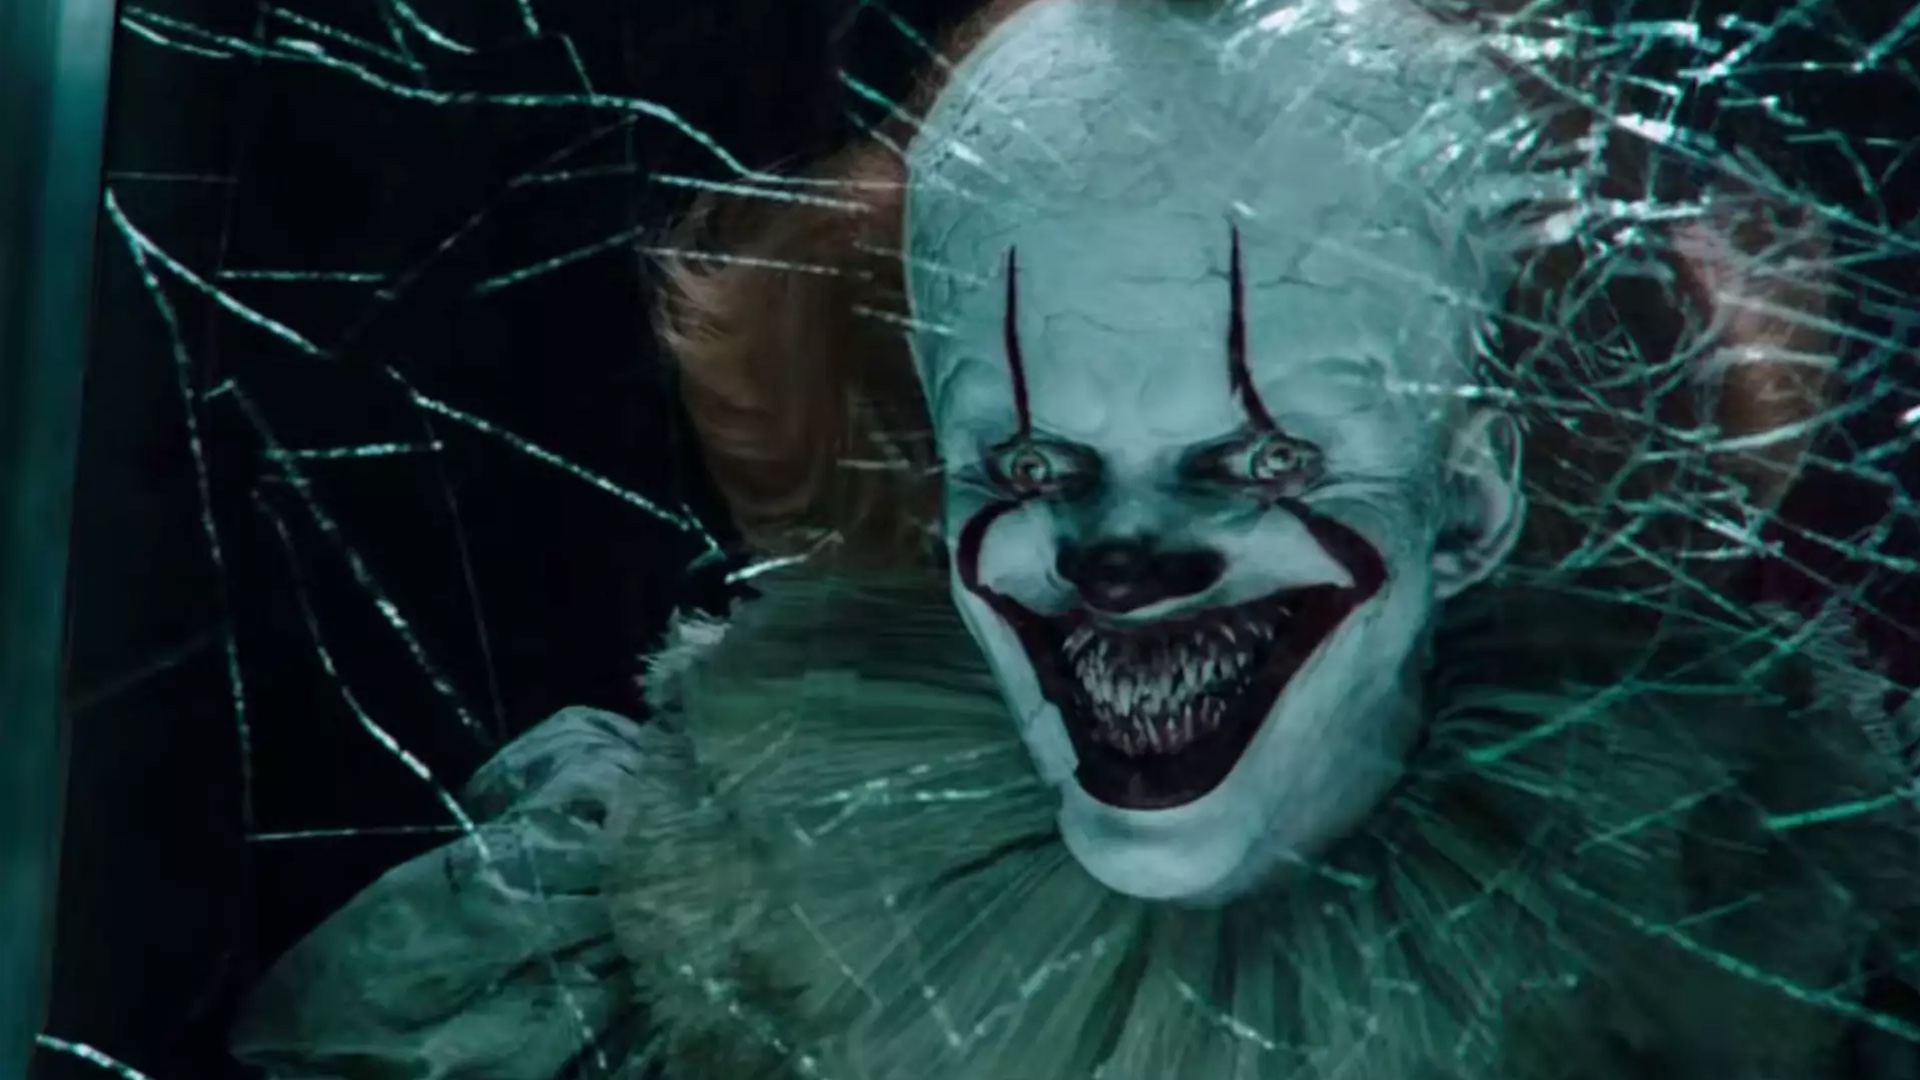 It Chapter 2 Warner Bros 2019 Review Stg